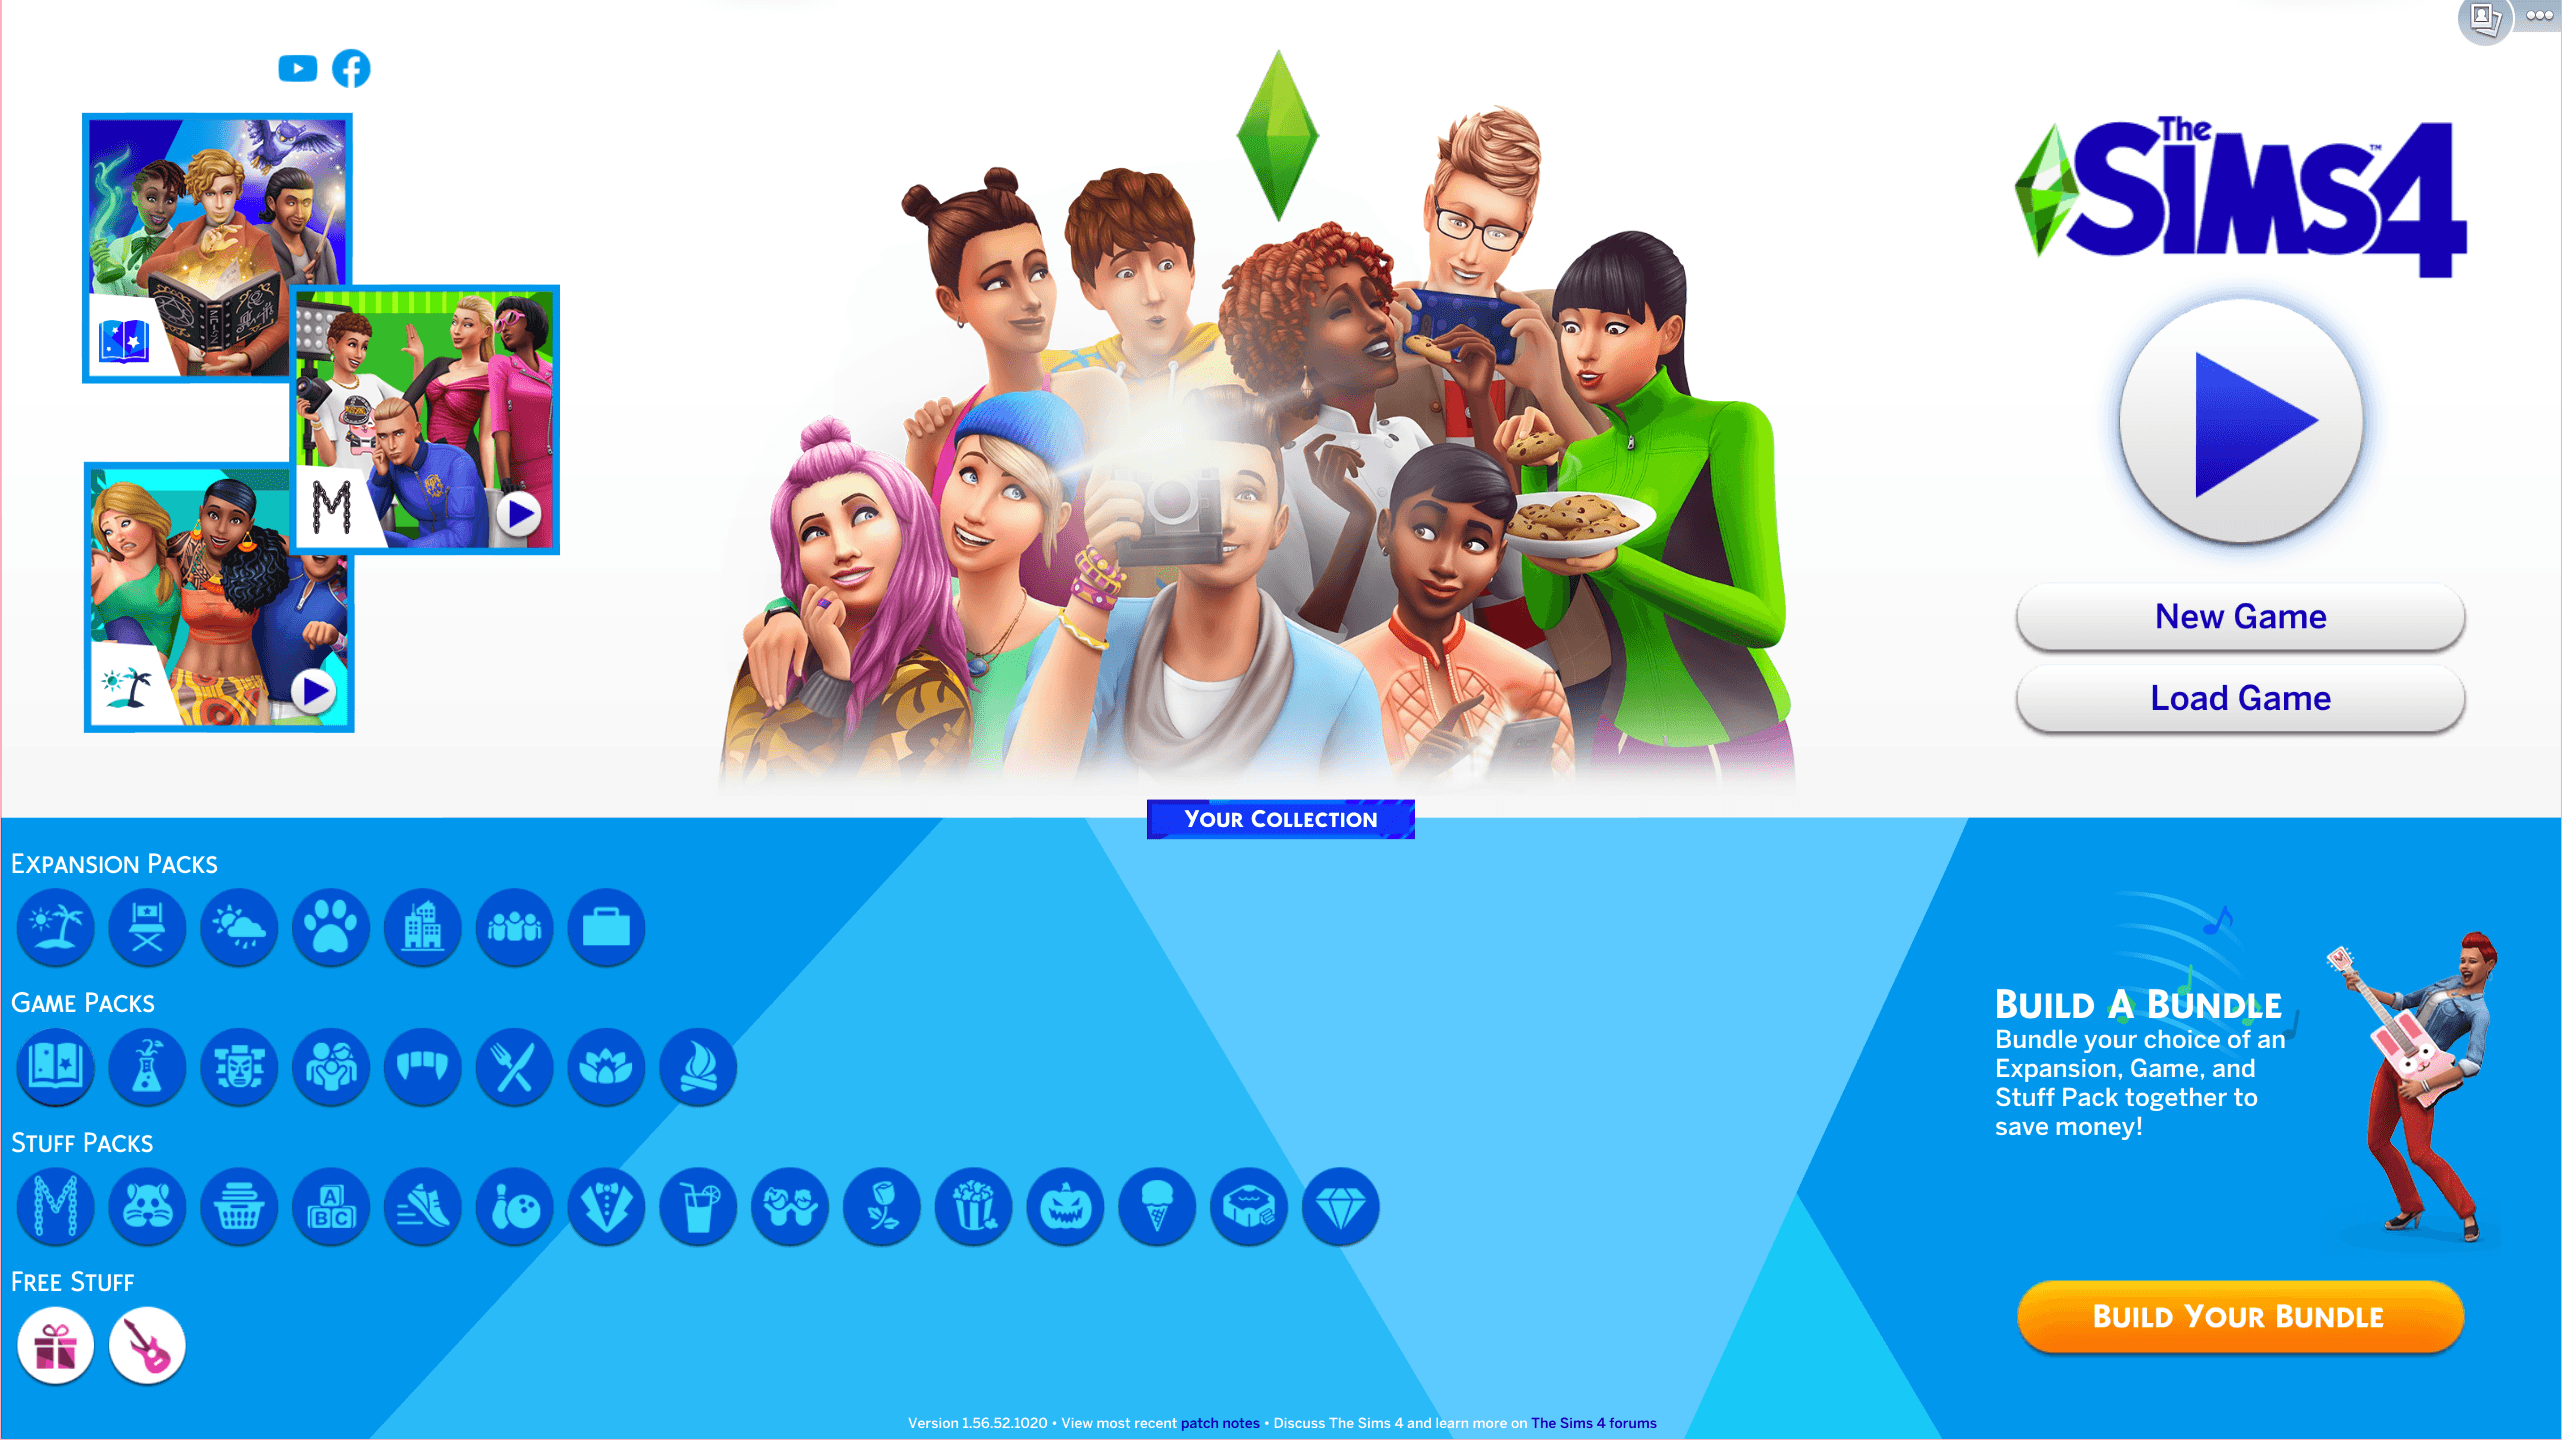 The Sims 4 Realm of Magic HotFix II 1.56.52.1020 Update Only - G4TW - The Sim Architect